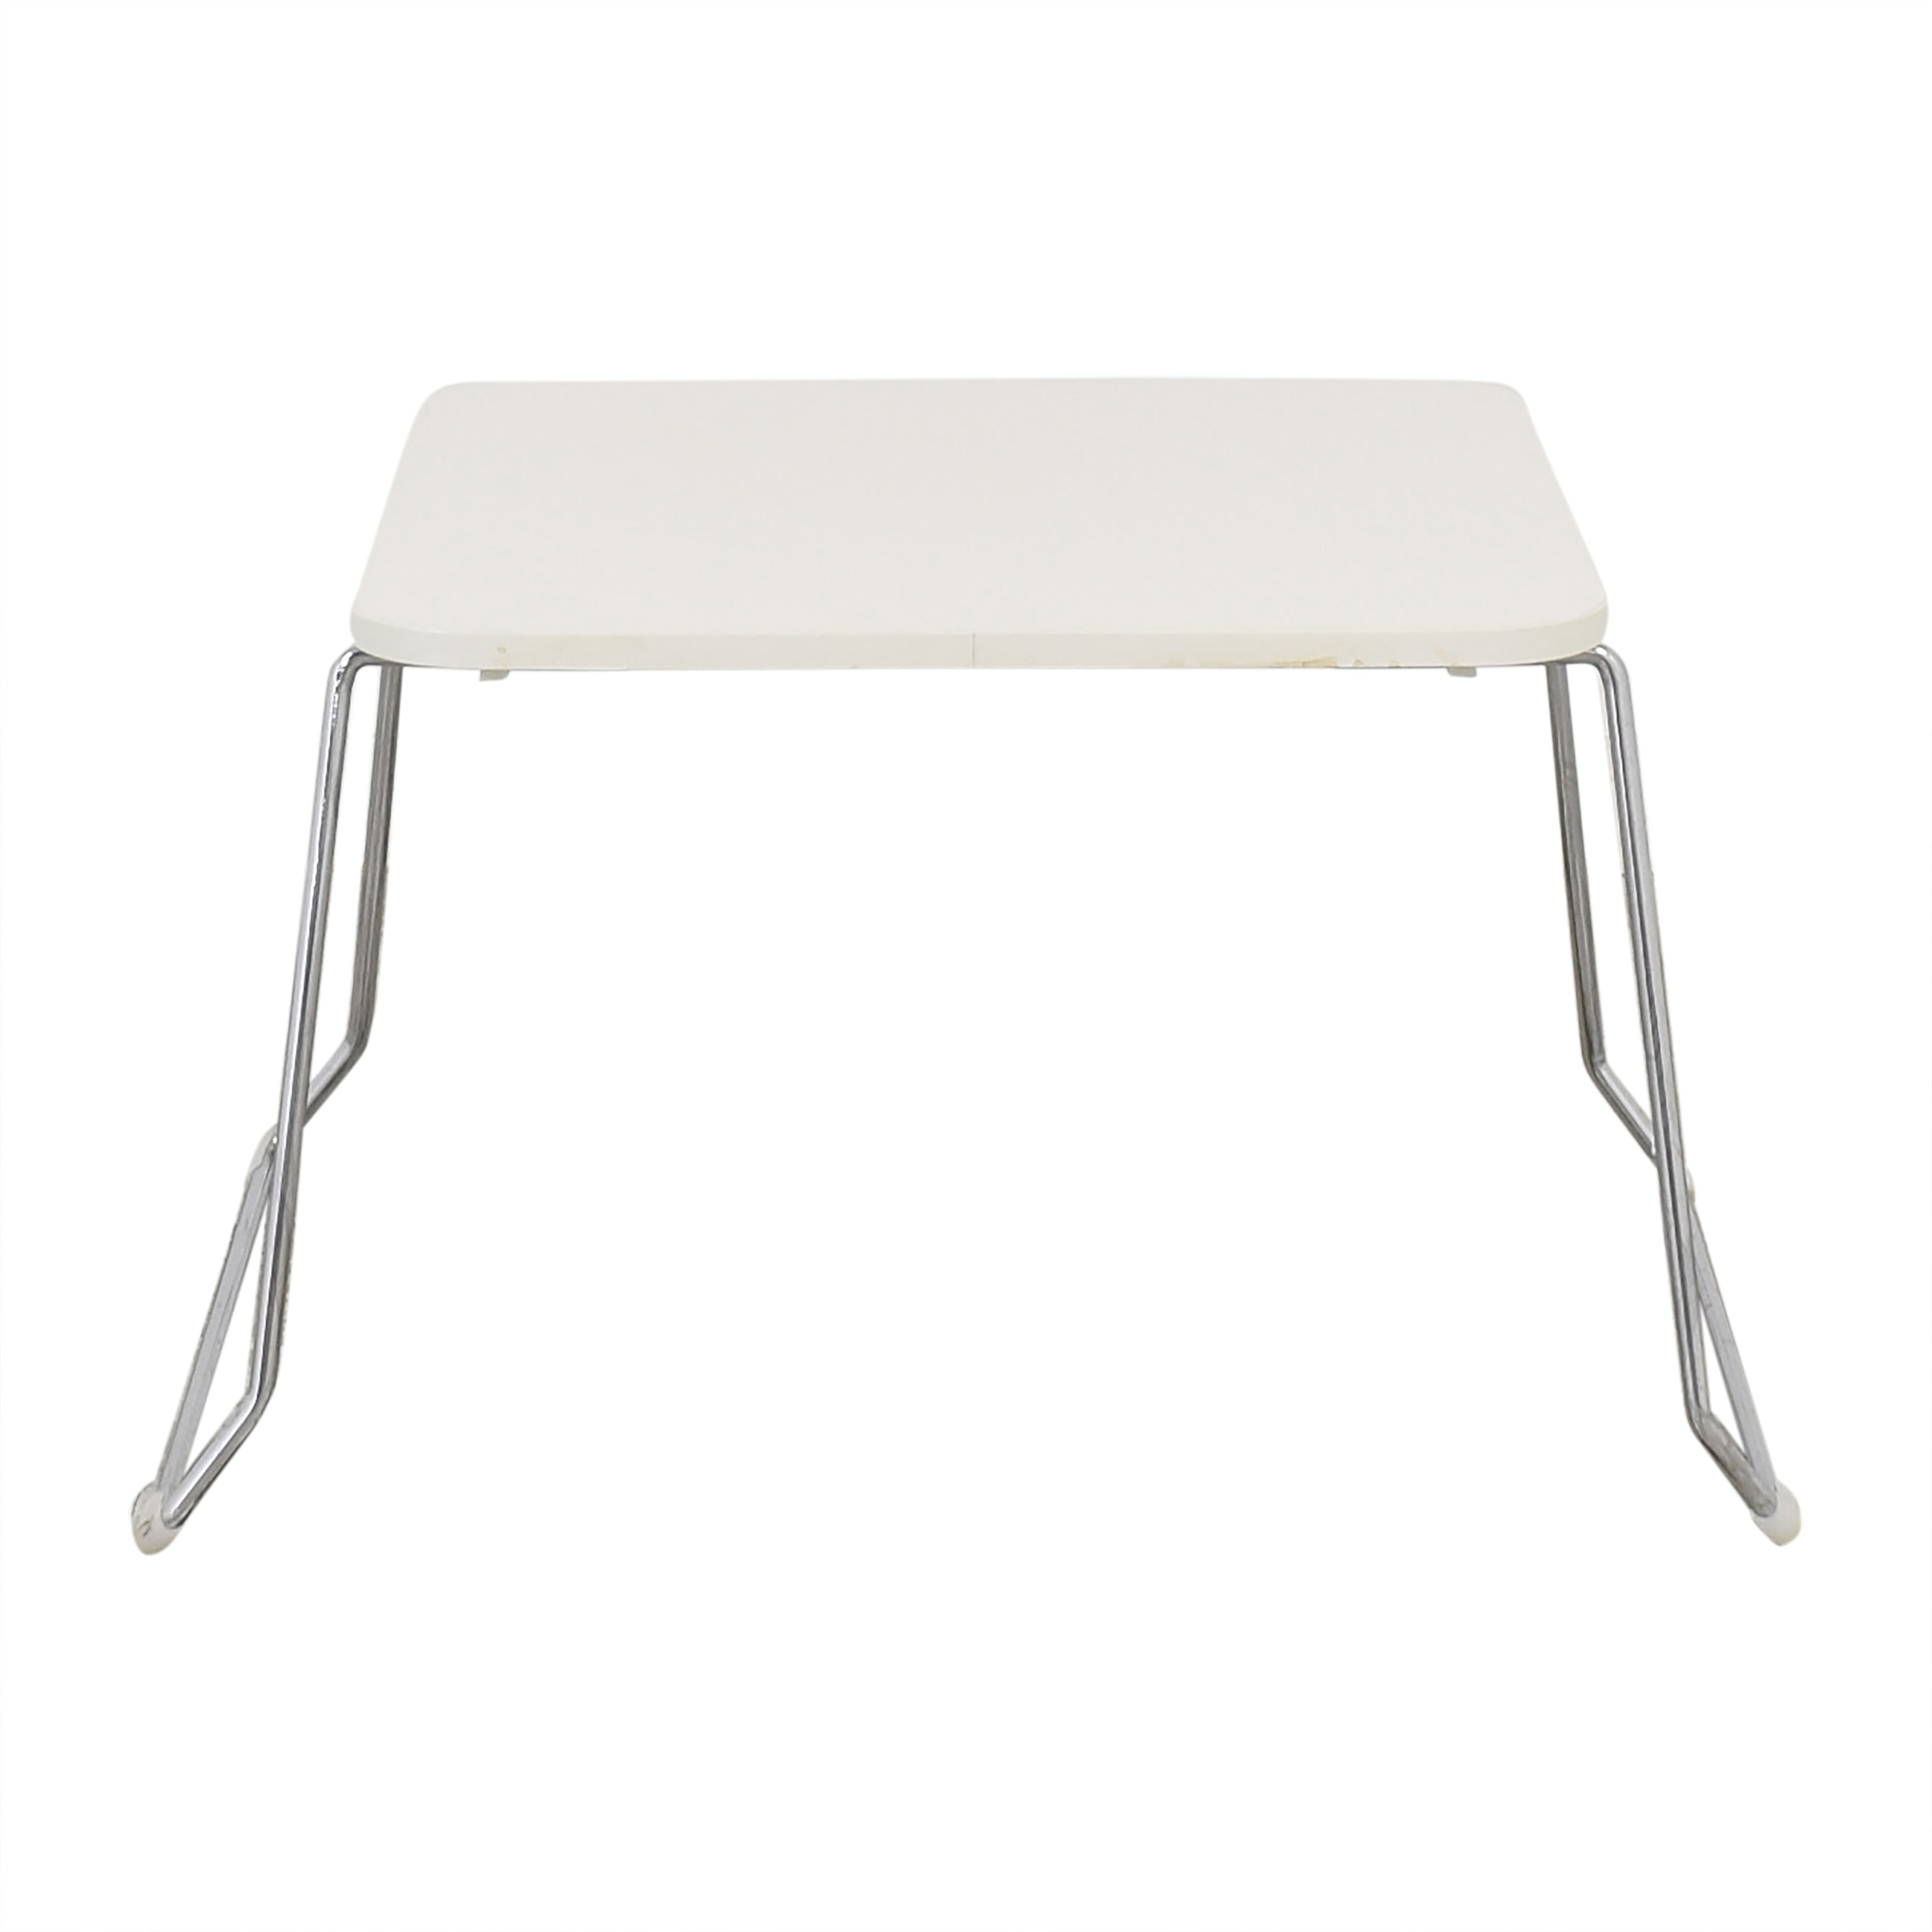 Koleksiyon Koleksiyion Asanda End Table white and silver